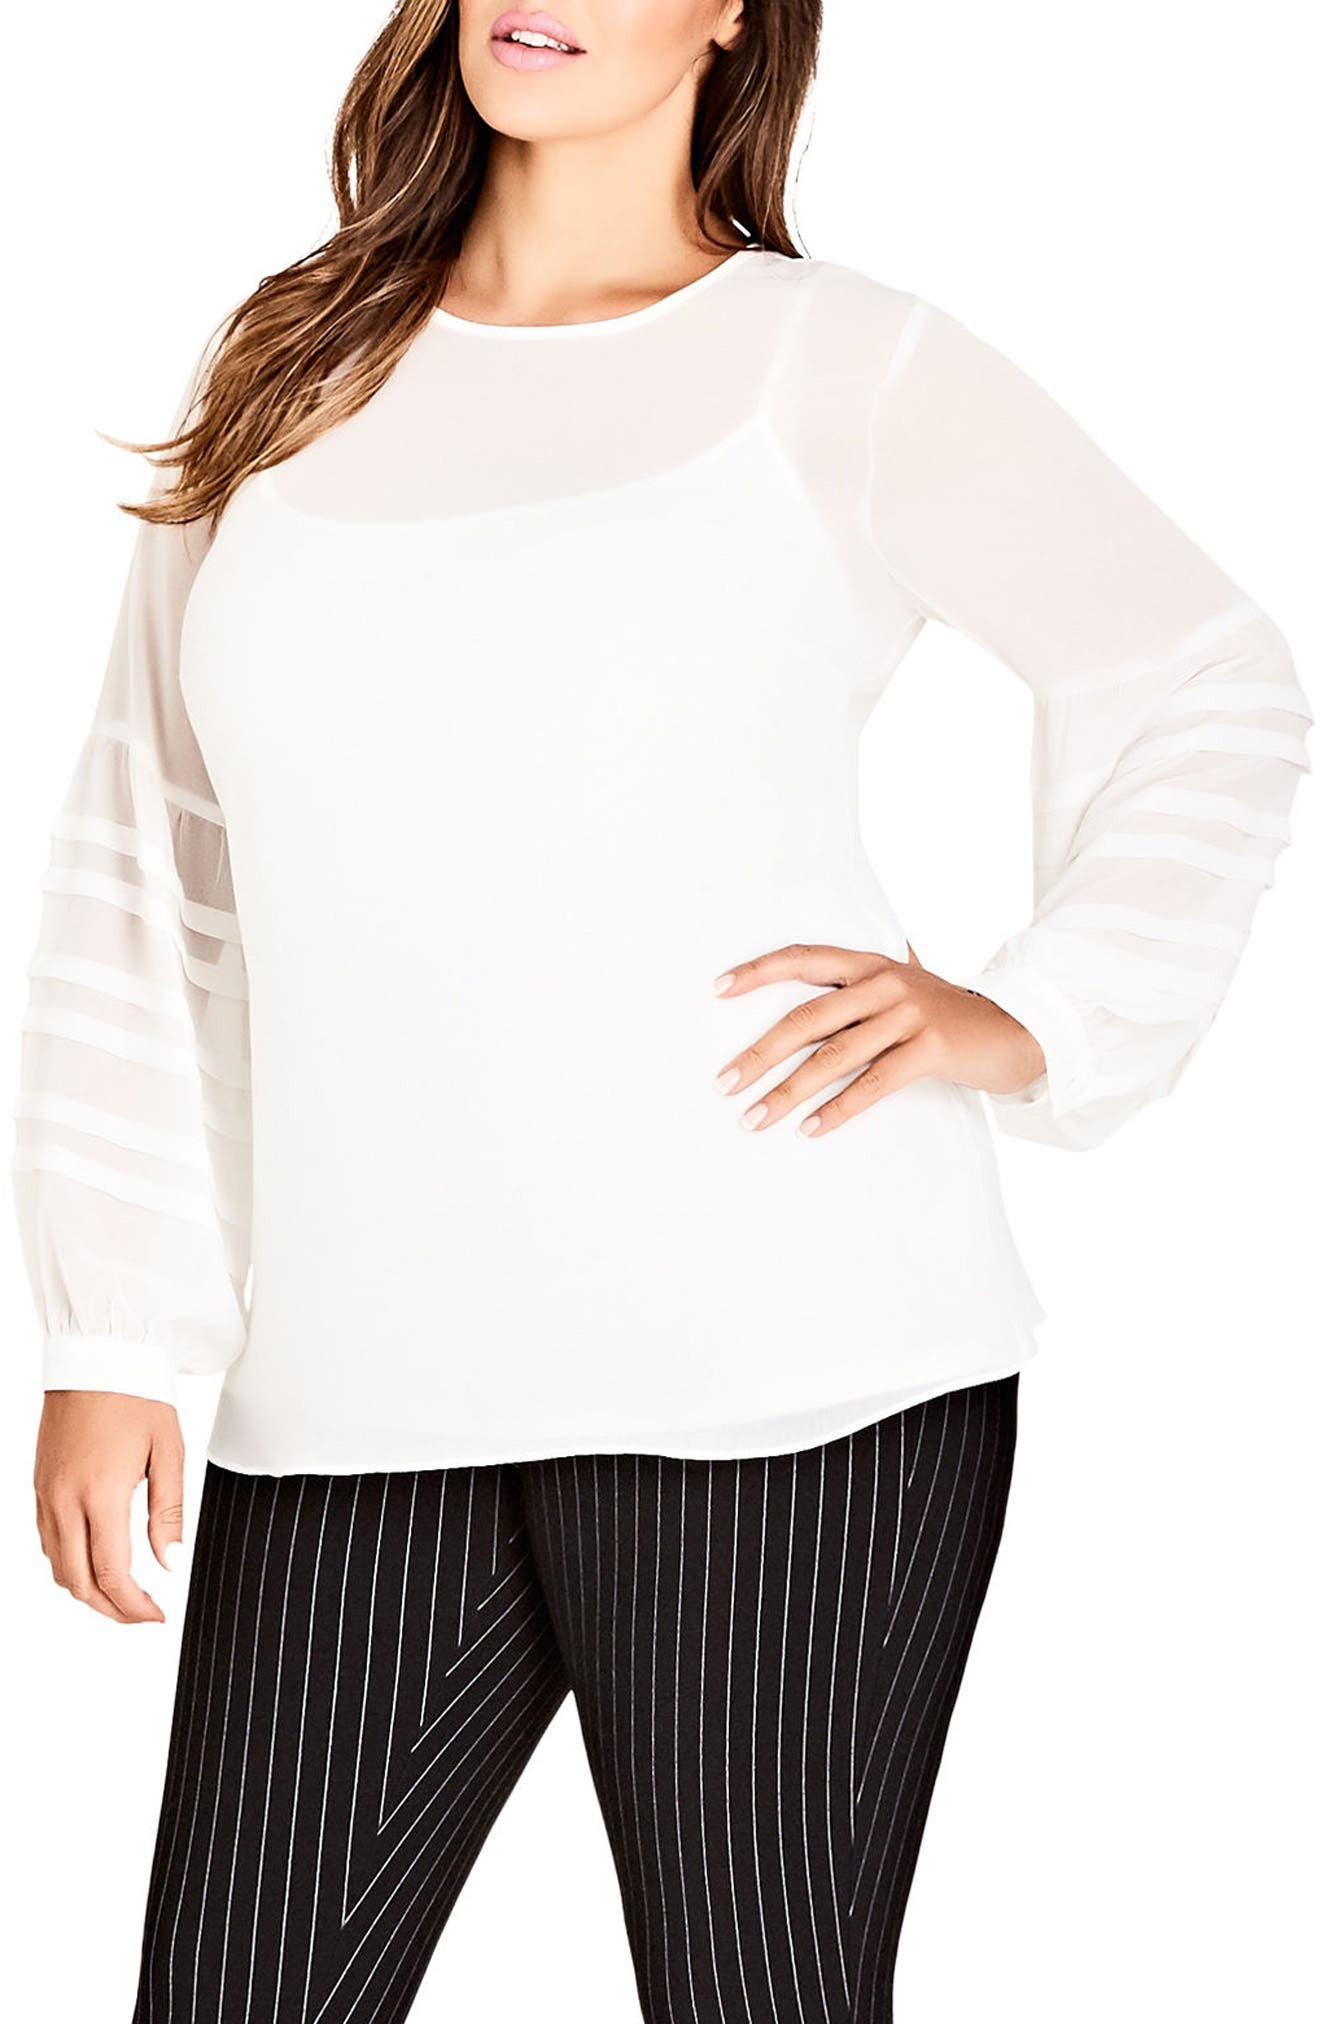 Seraphina Balloon Sleeve Top,                         Main,                         color, IVORY